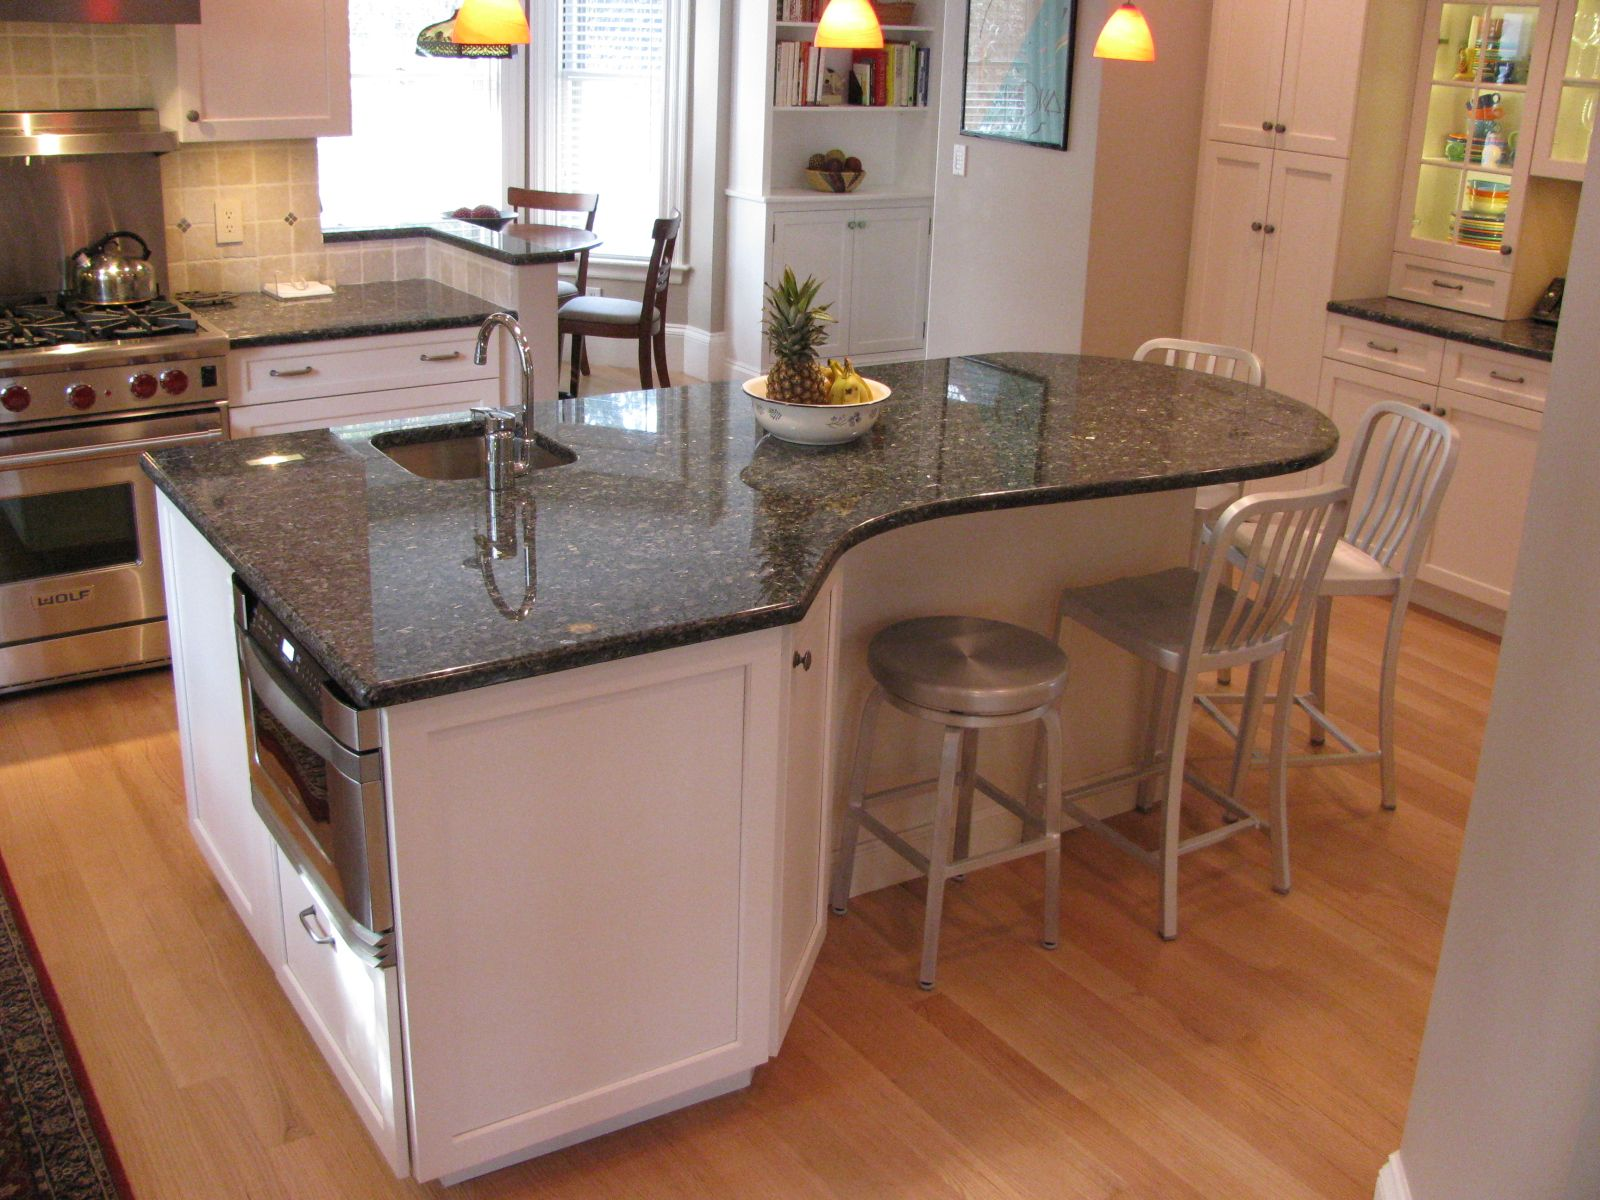 kitchen islands with seating  kitchen_island_seating